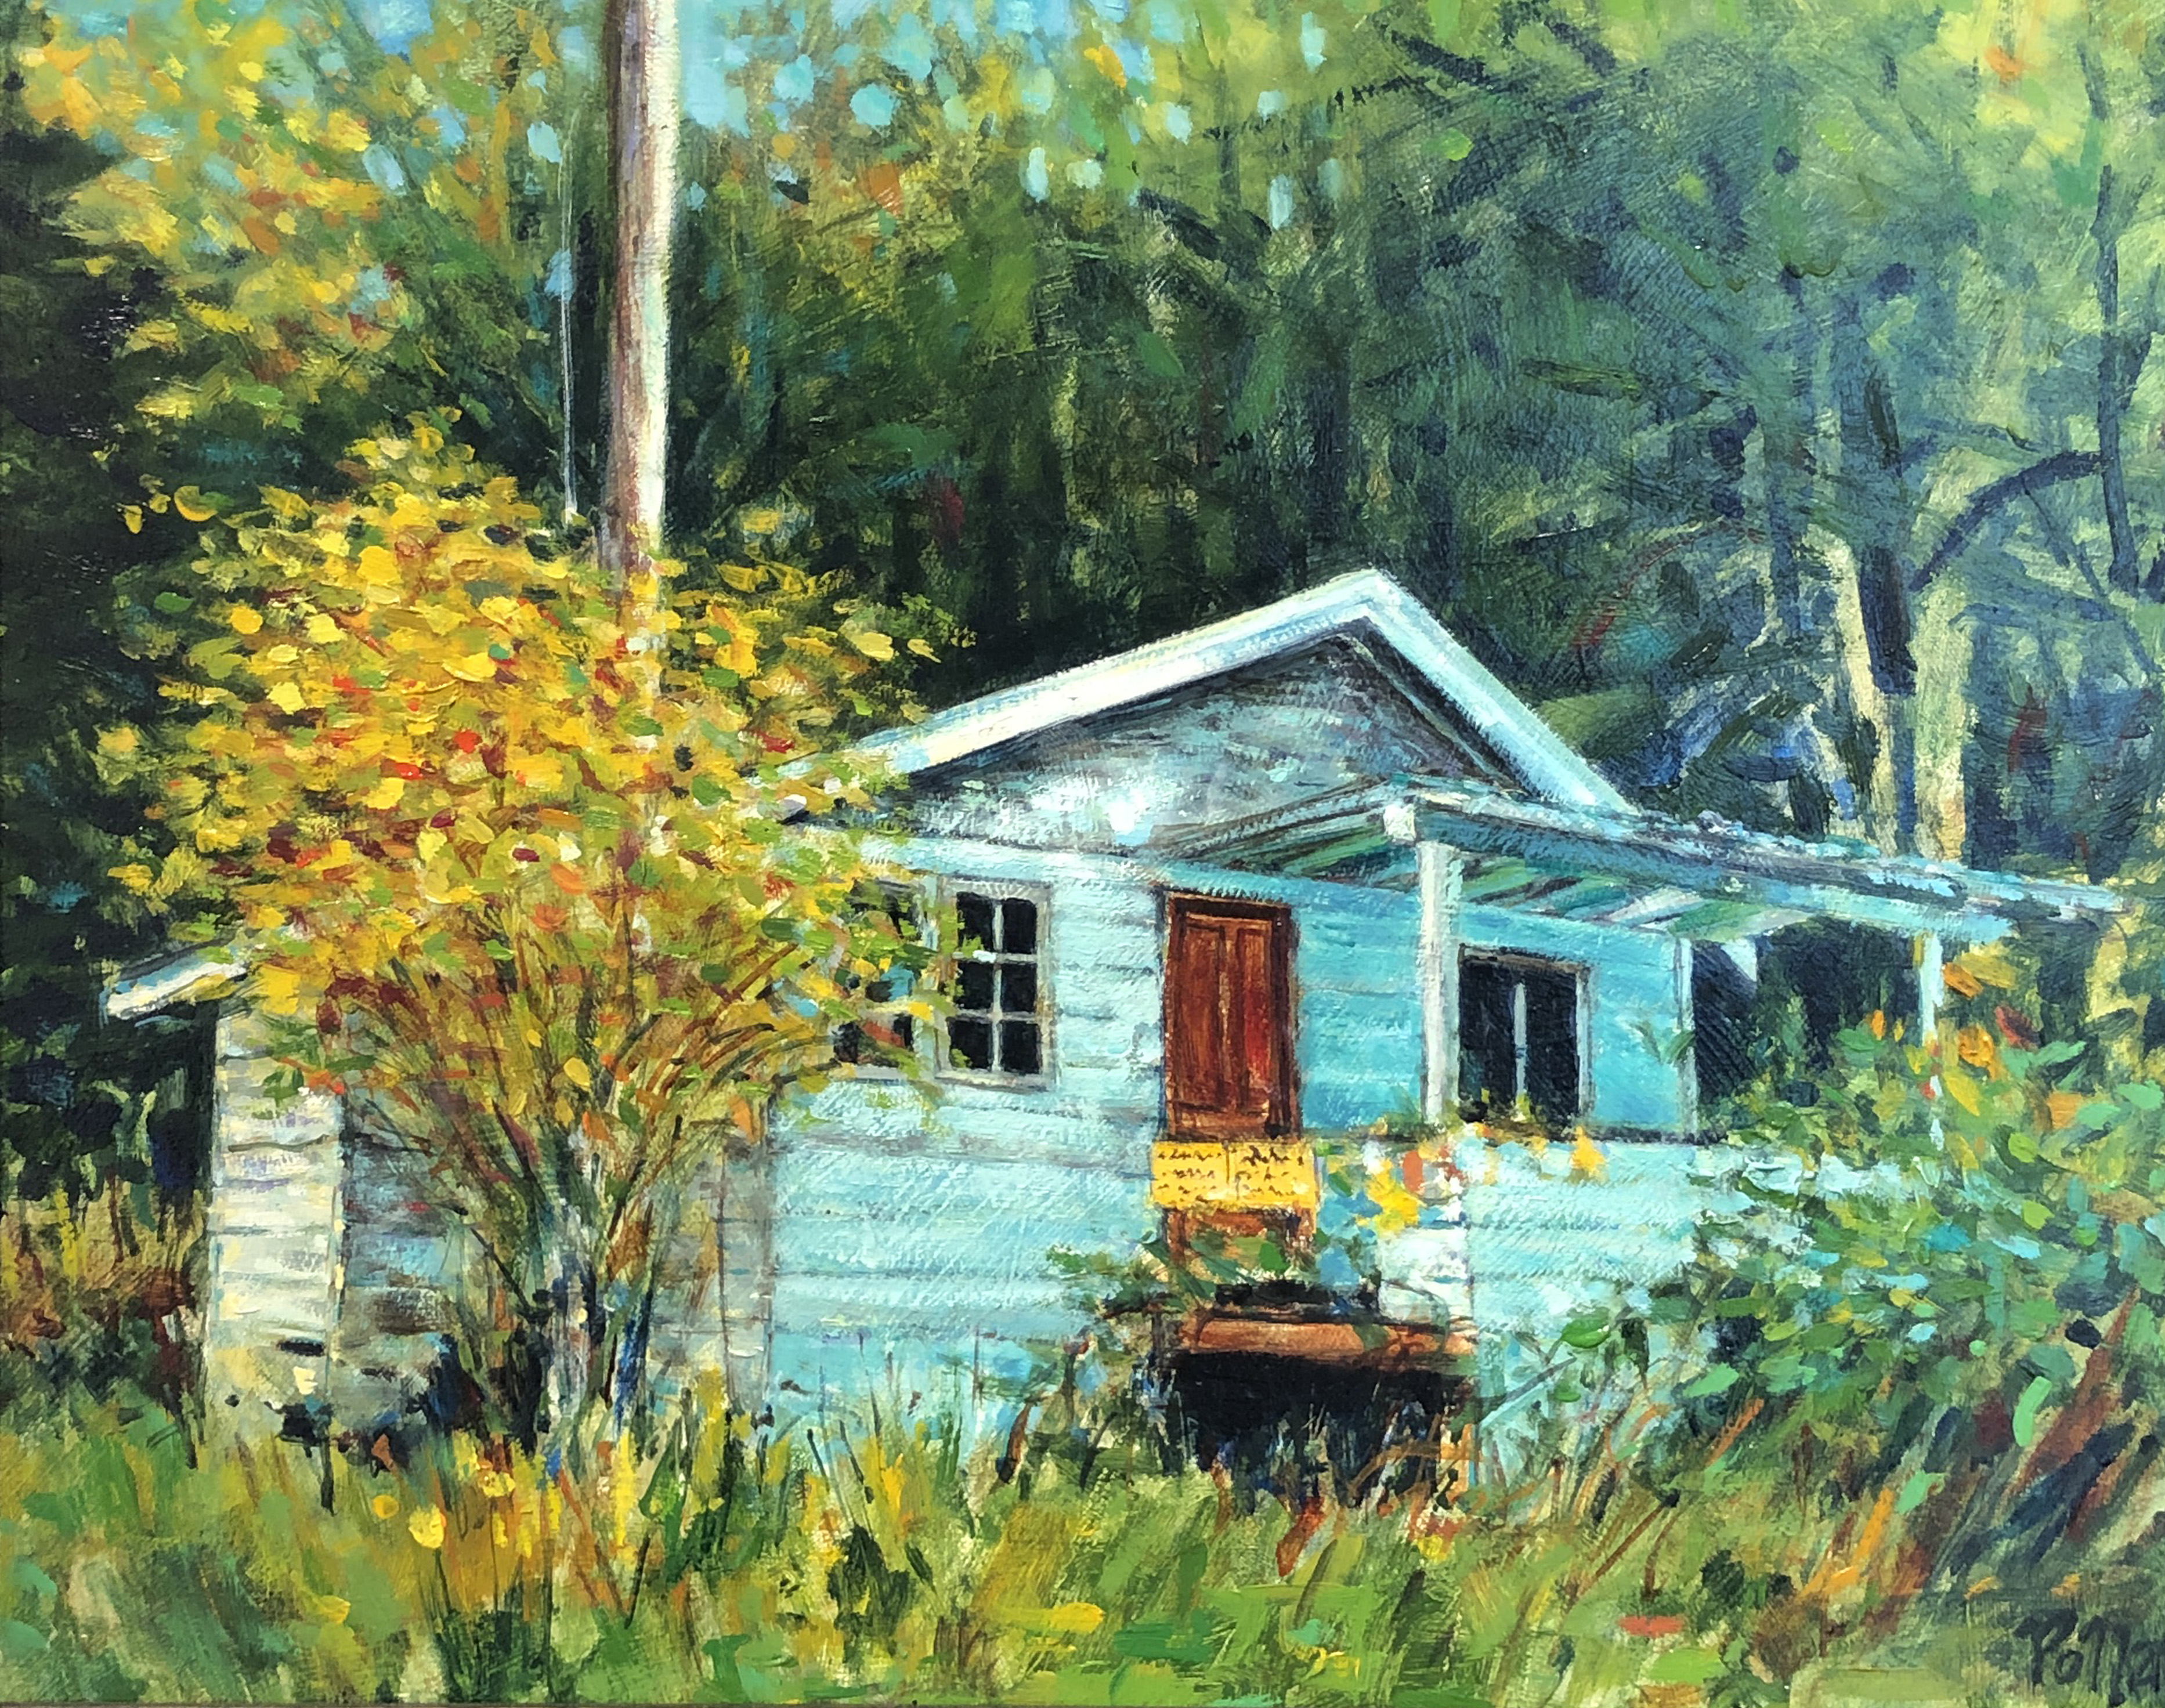 The Old House at Roesland | Landscape Painting | Pender Island | Artist Painter Kim Pollard | Canada | Roesland